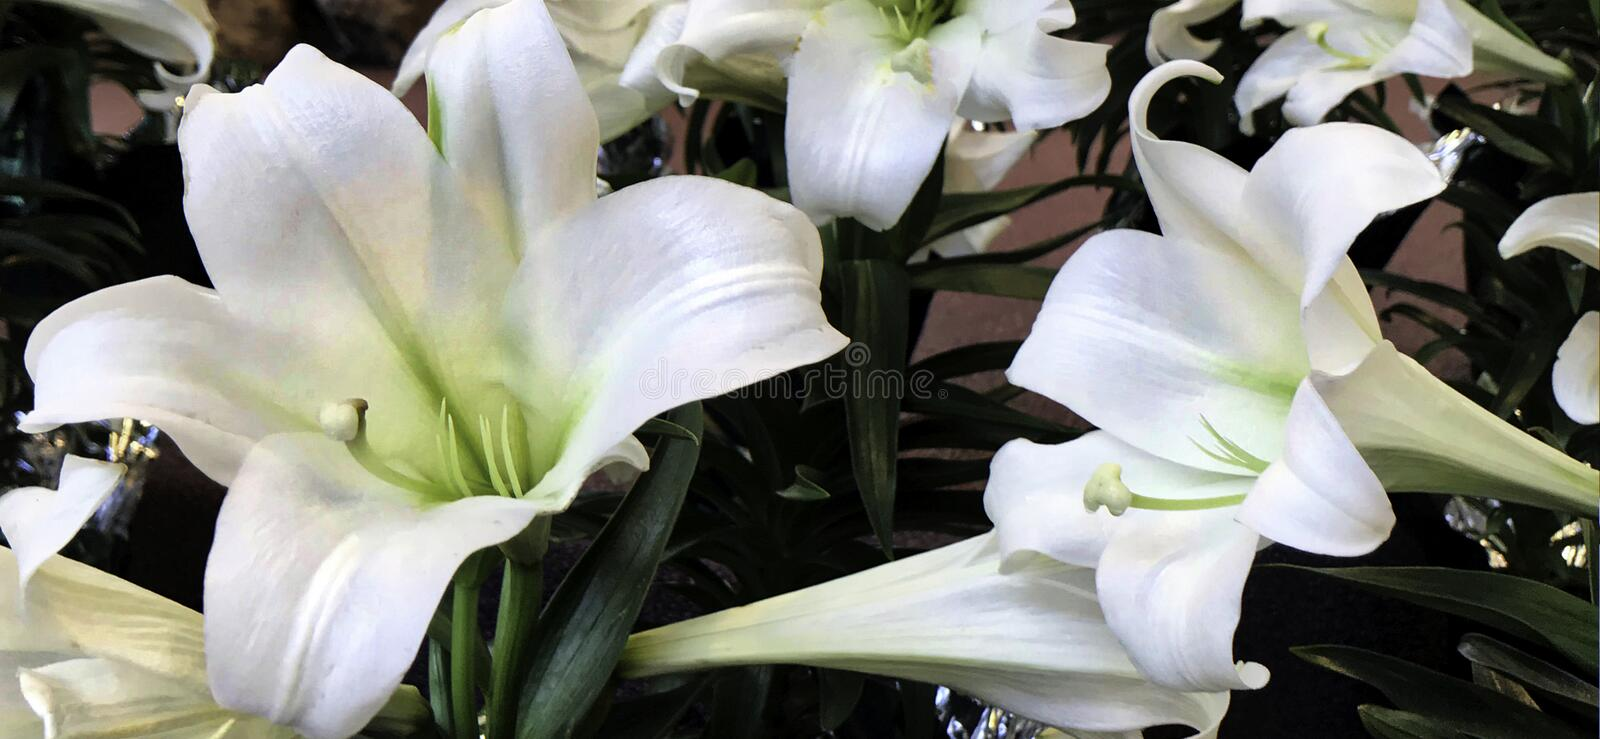 Flower, Easter Lilly, White, from both Taiwan and Ryukyu Islands royalty free stock photos